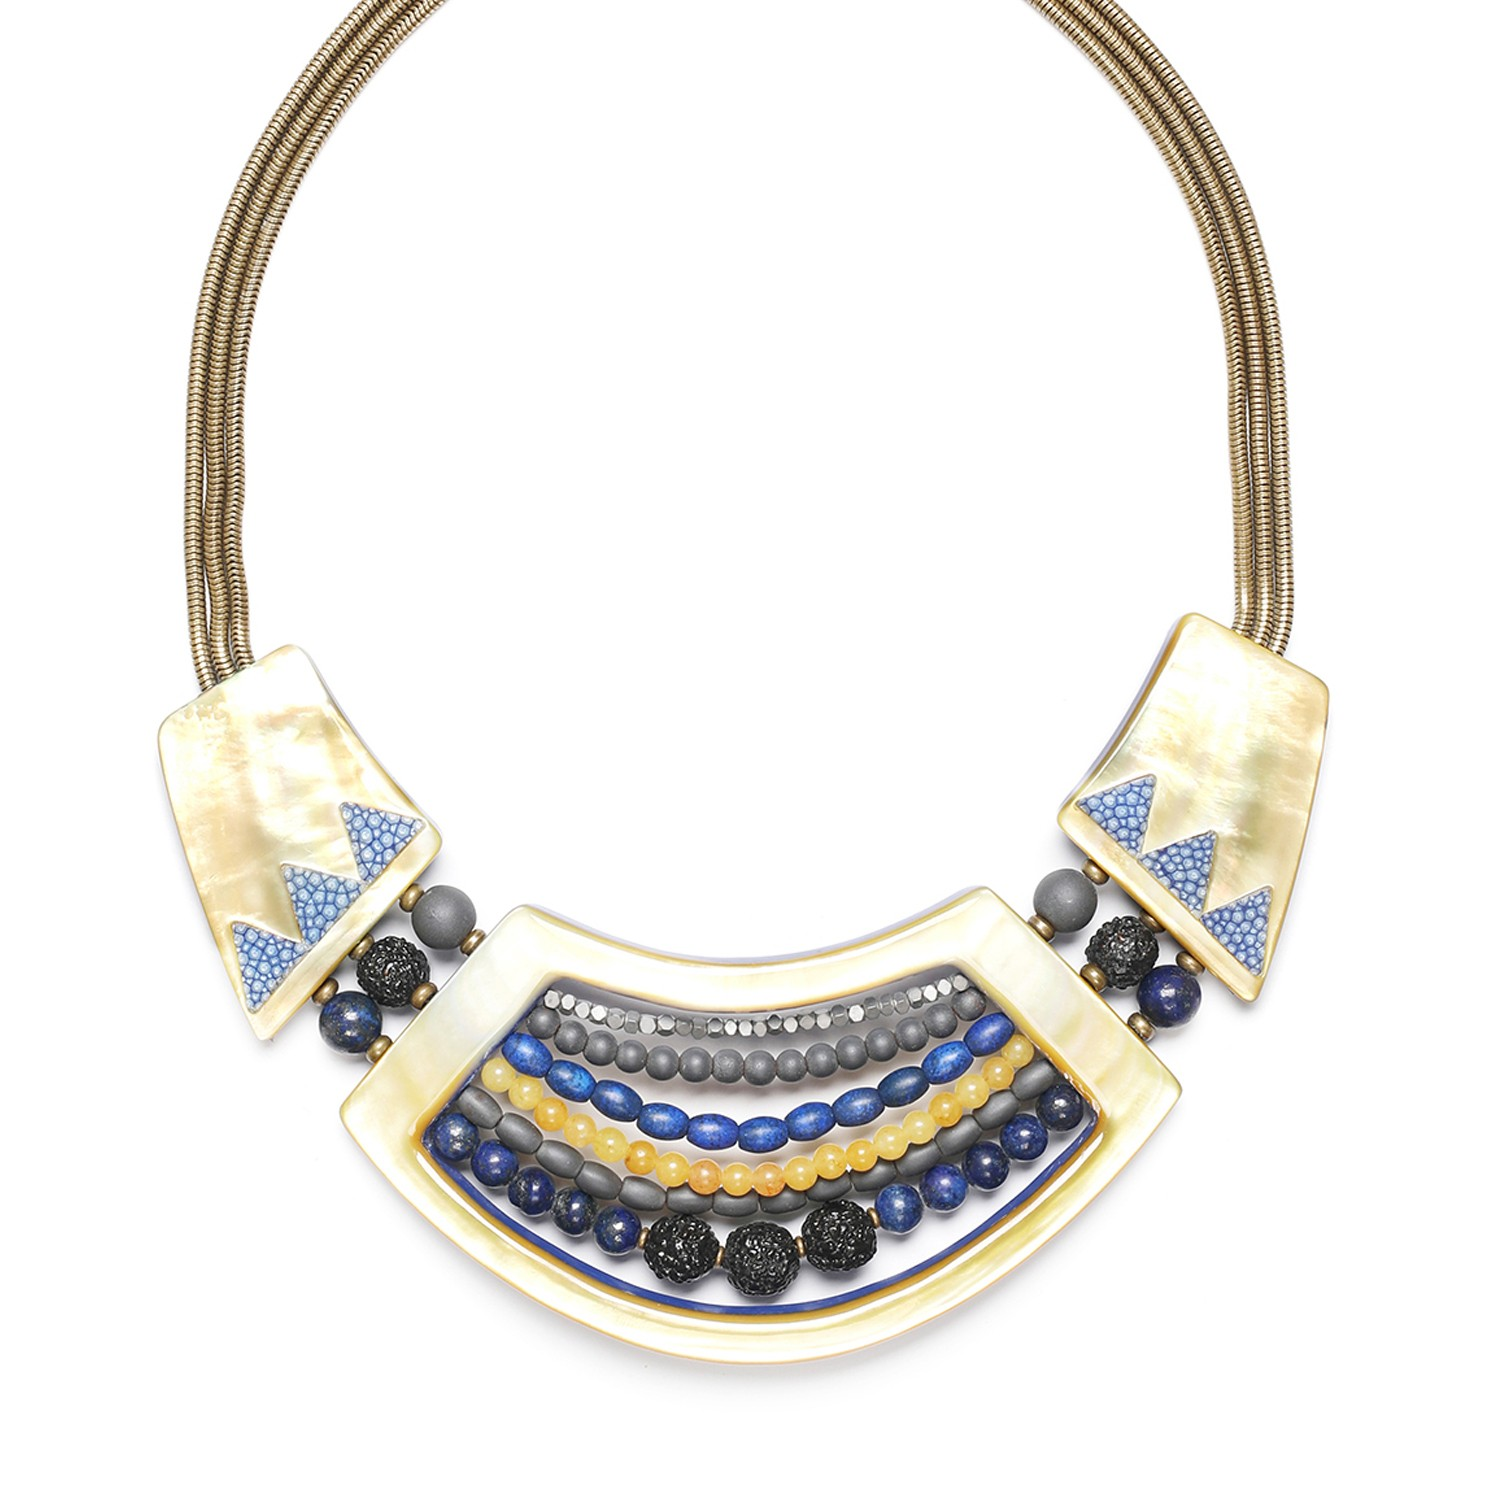 BLUE TRIBE collier 3 éléments